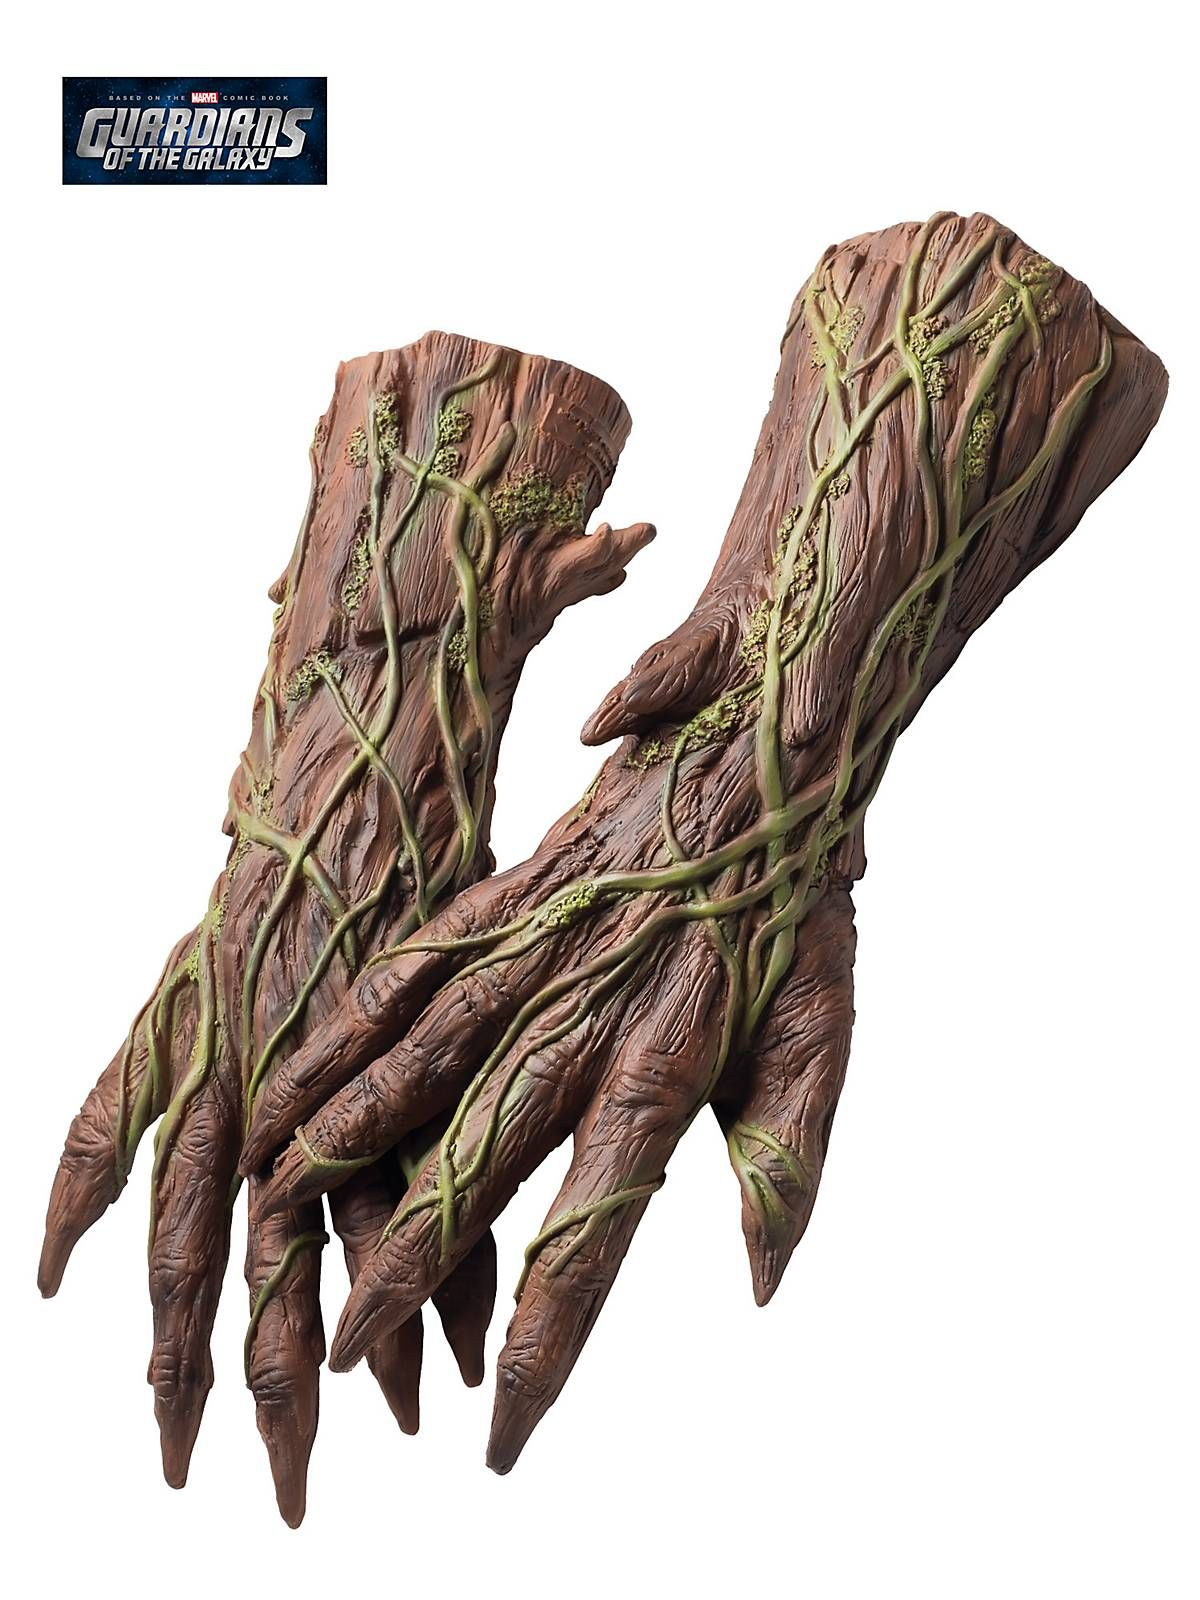 guardians of the galaxy deluxe groot hands see more costume accessories at costumesupercenter - Accessories For Halloween Costumes